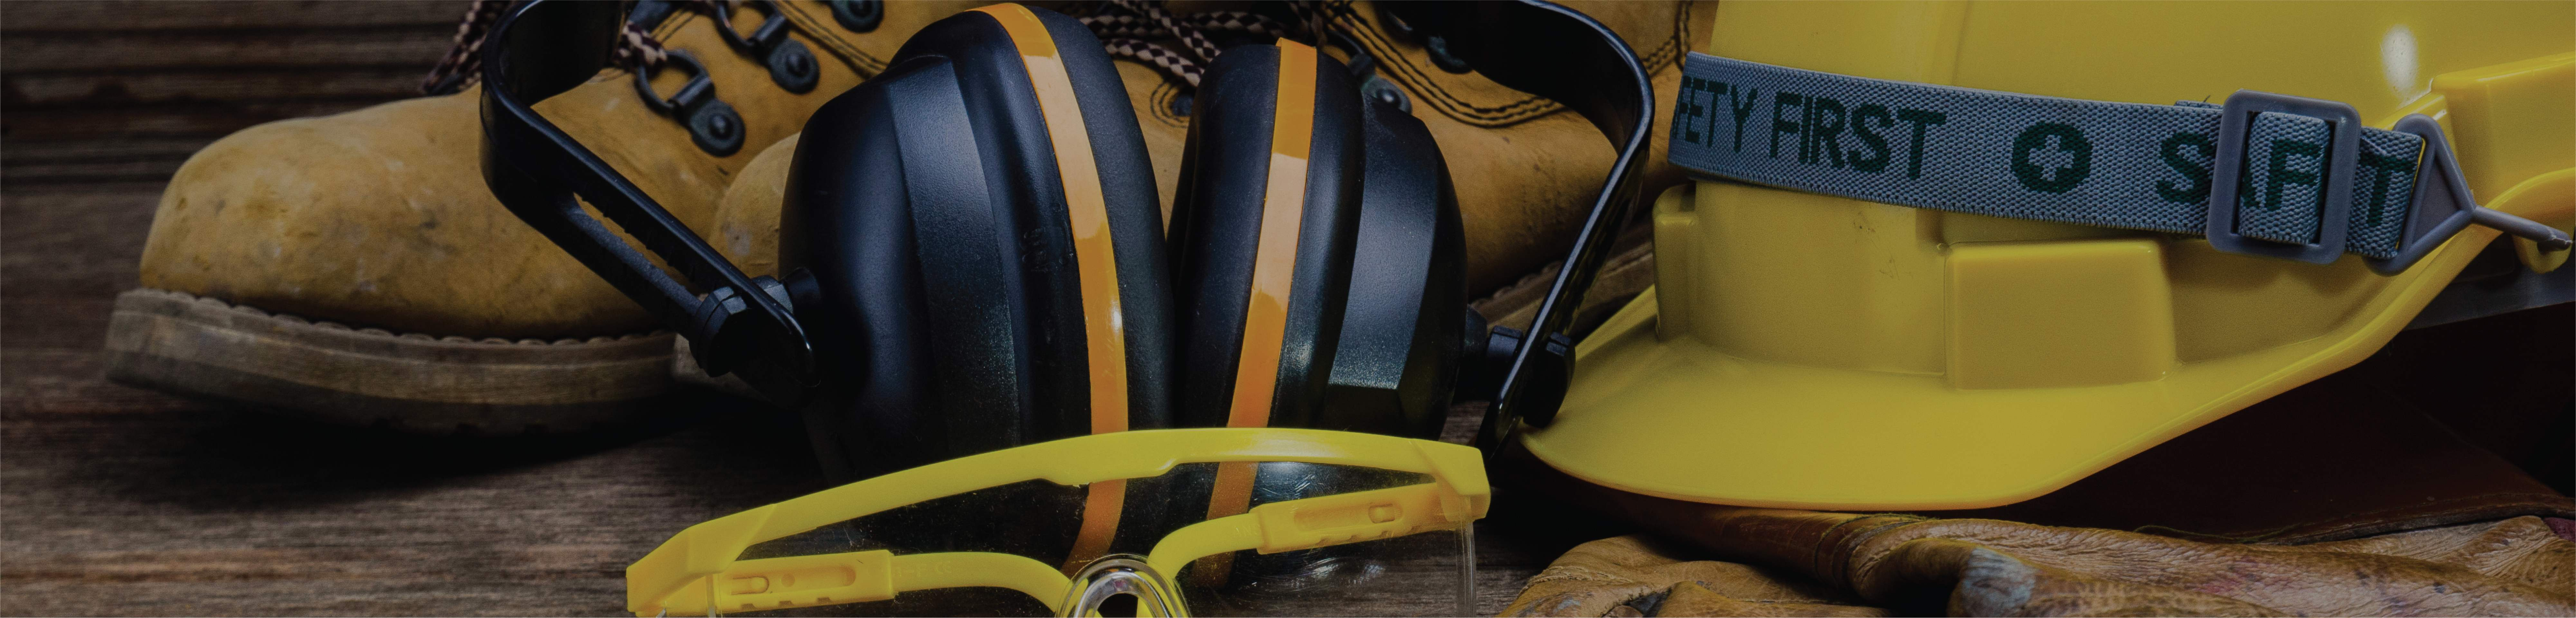 Texcan - Health & Safety Banner Image 1920x460px.jpg